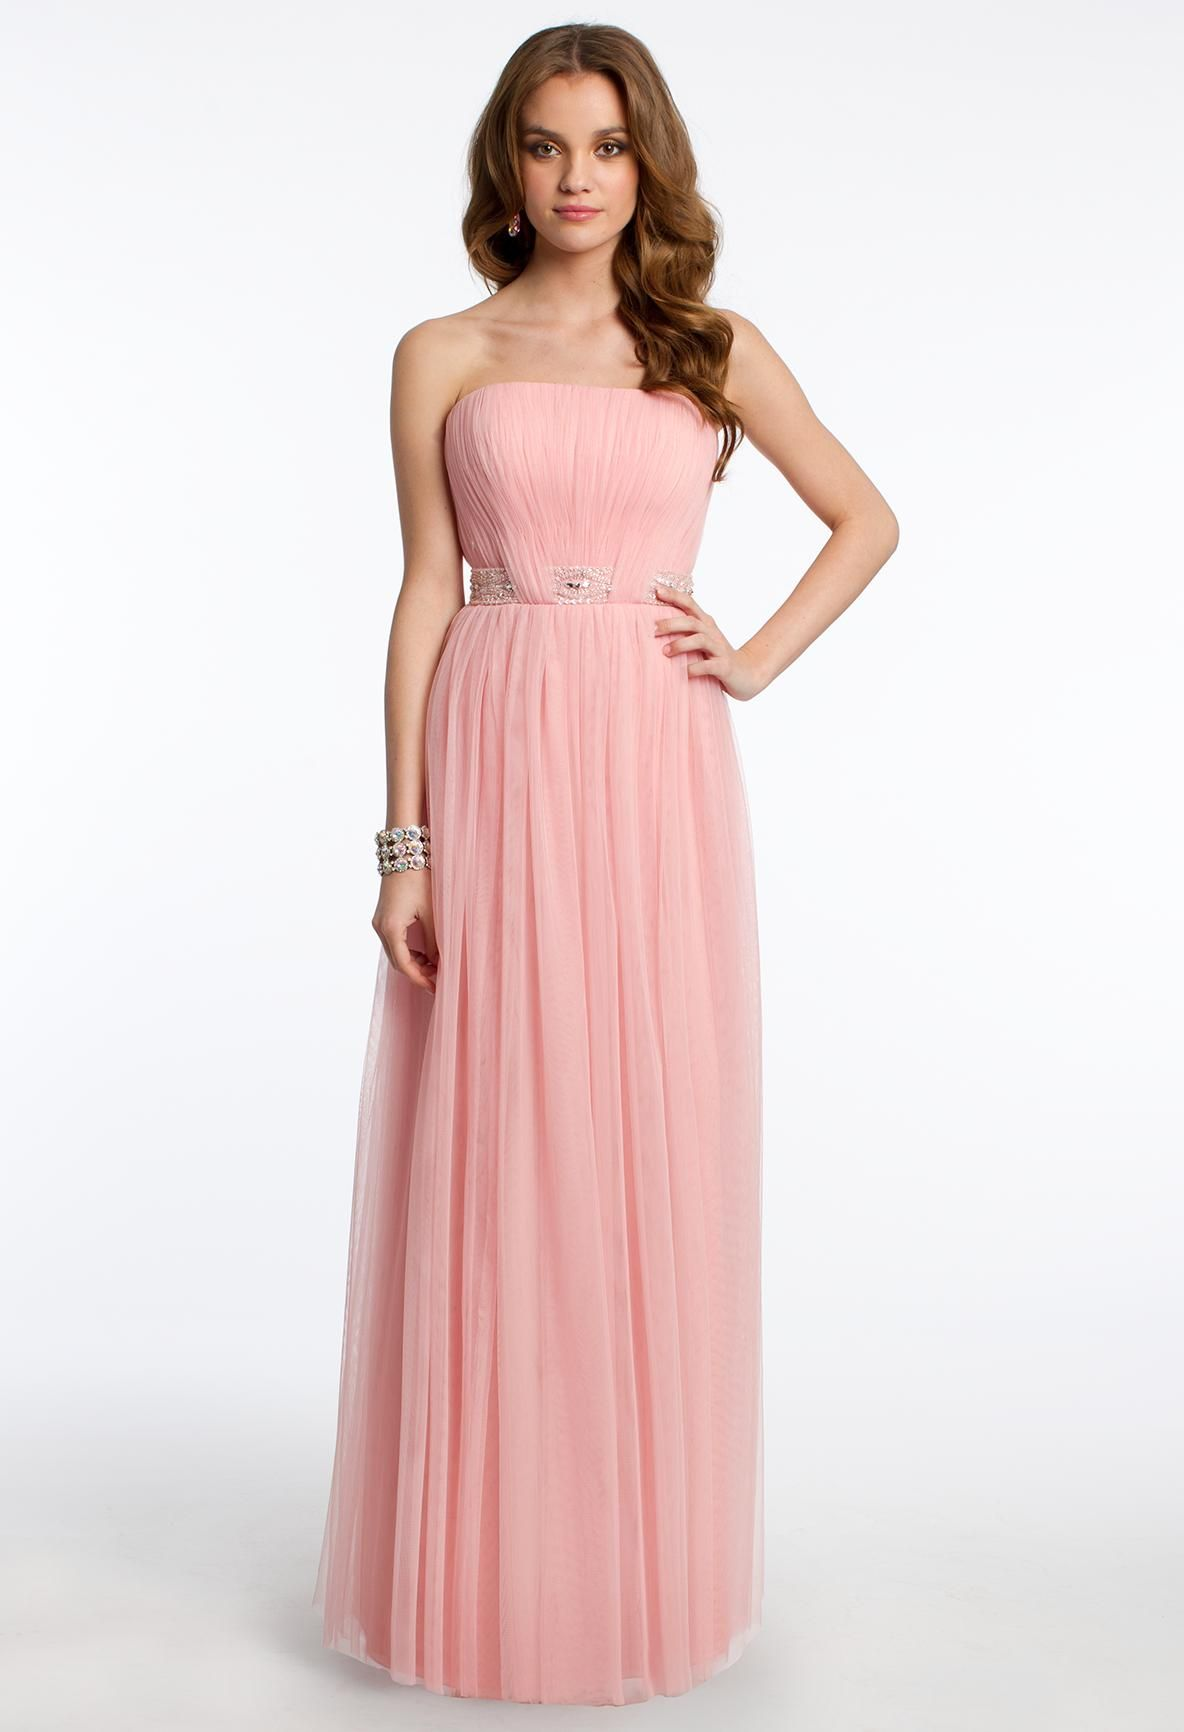 Strapless Ruched Prom Dress #camillelavie #CLVprom | PROM DRESSES ...